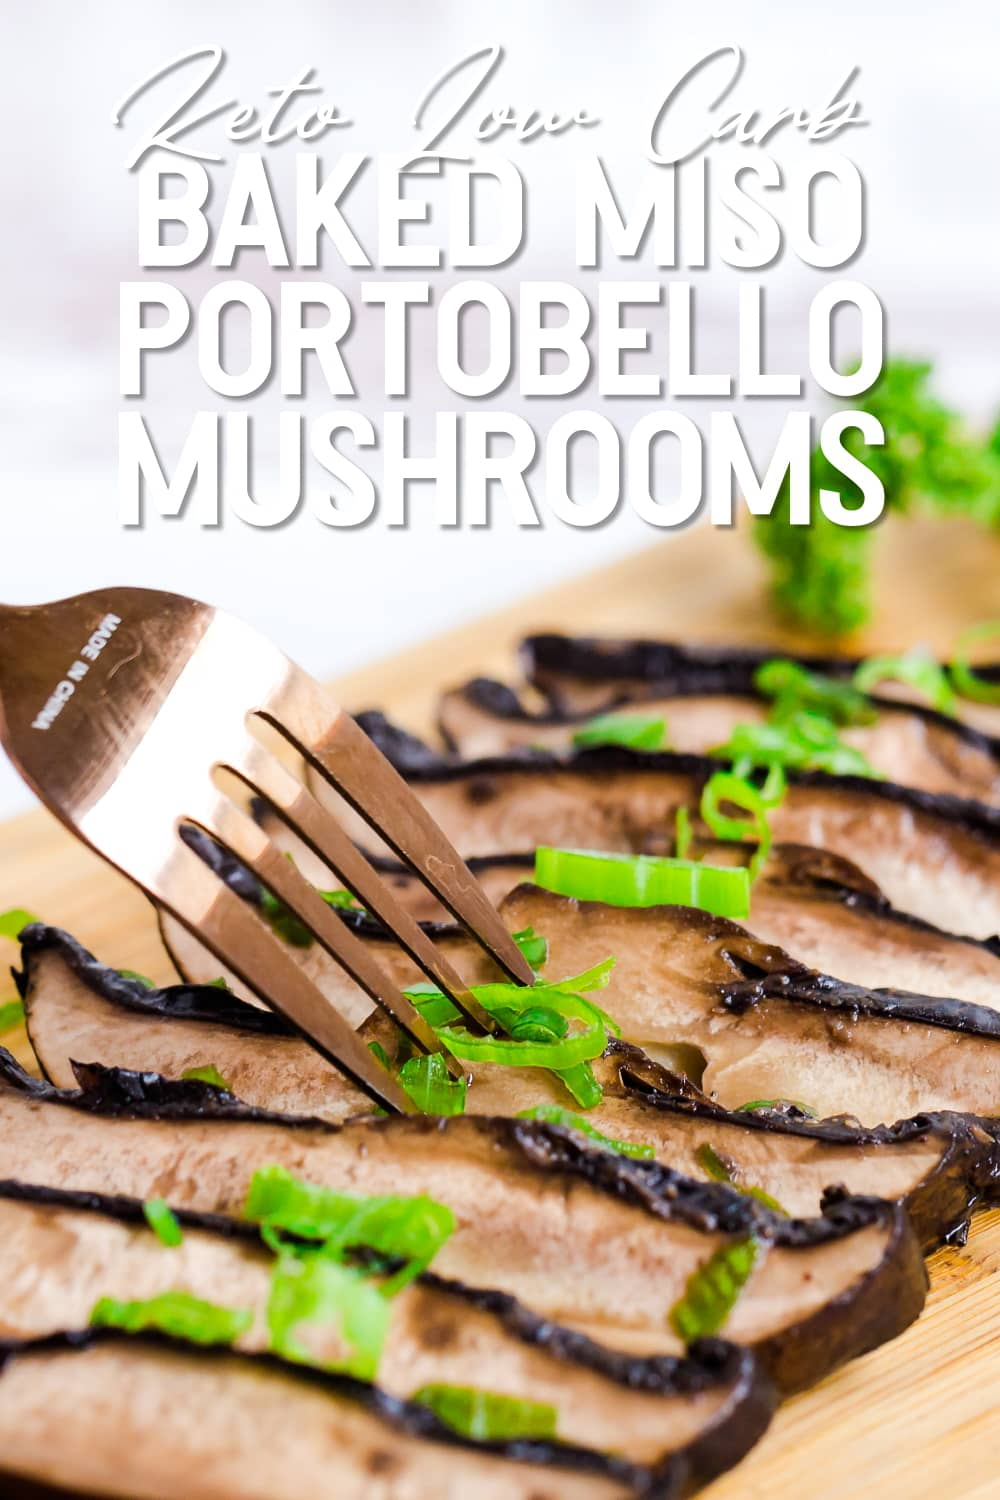 Baked Miso Portobello Mushrooms served with sprinkle green onions and fork